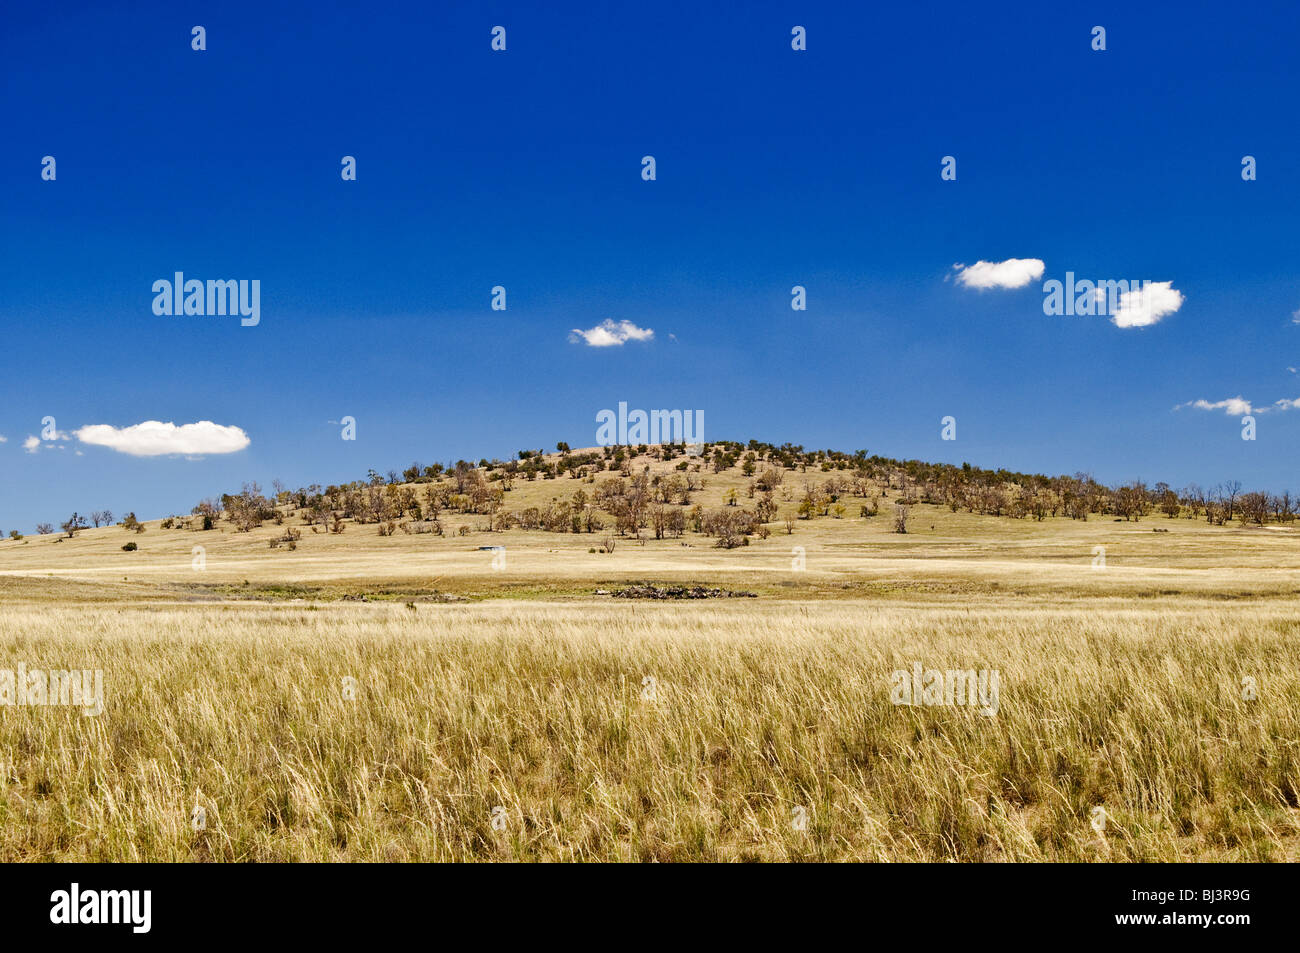 A grassy field and hill in the Australian outback - Stock Image